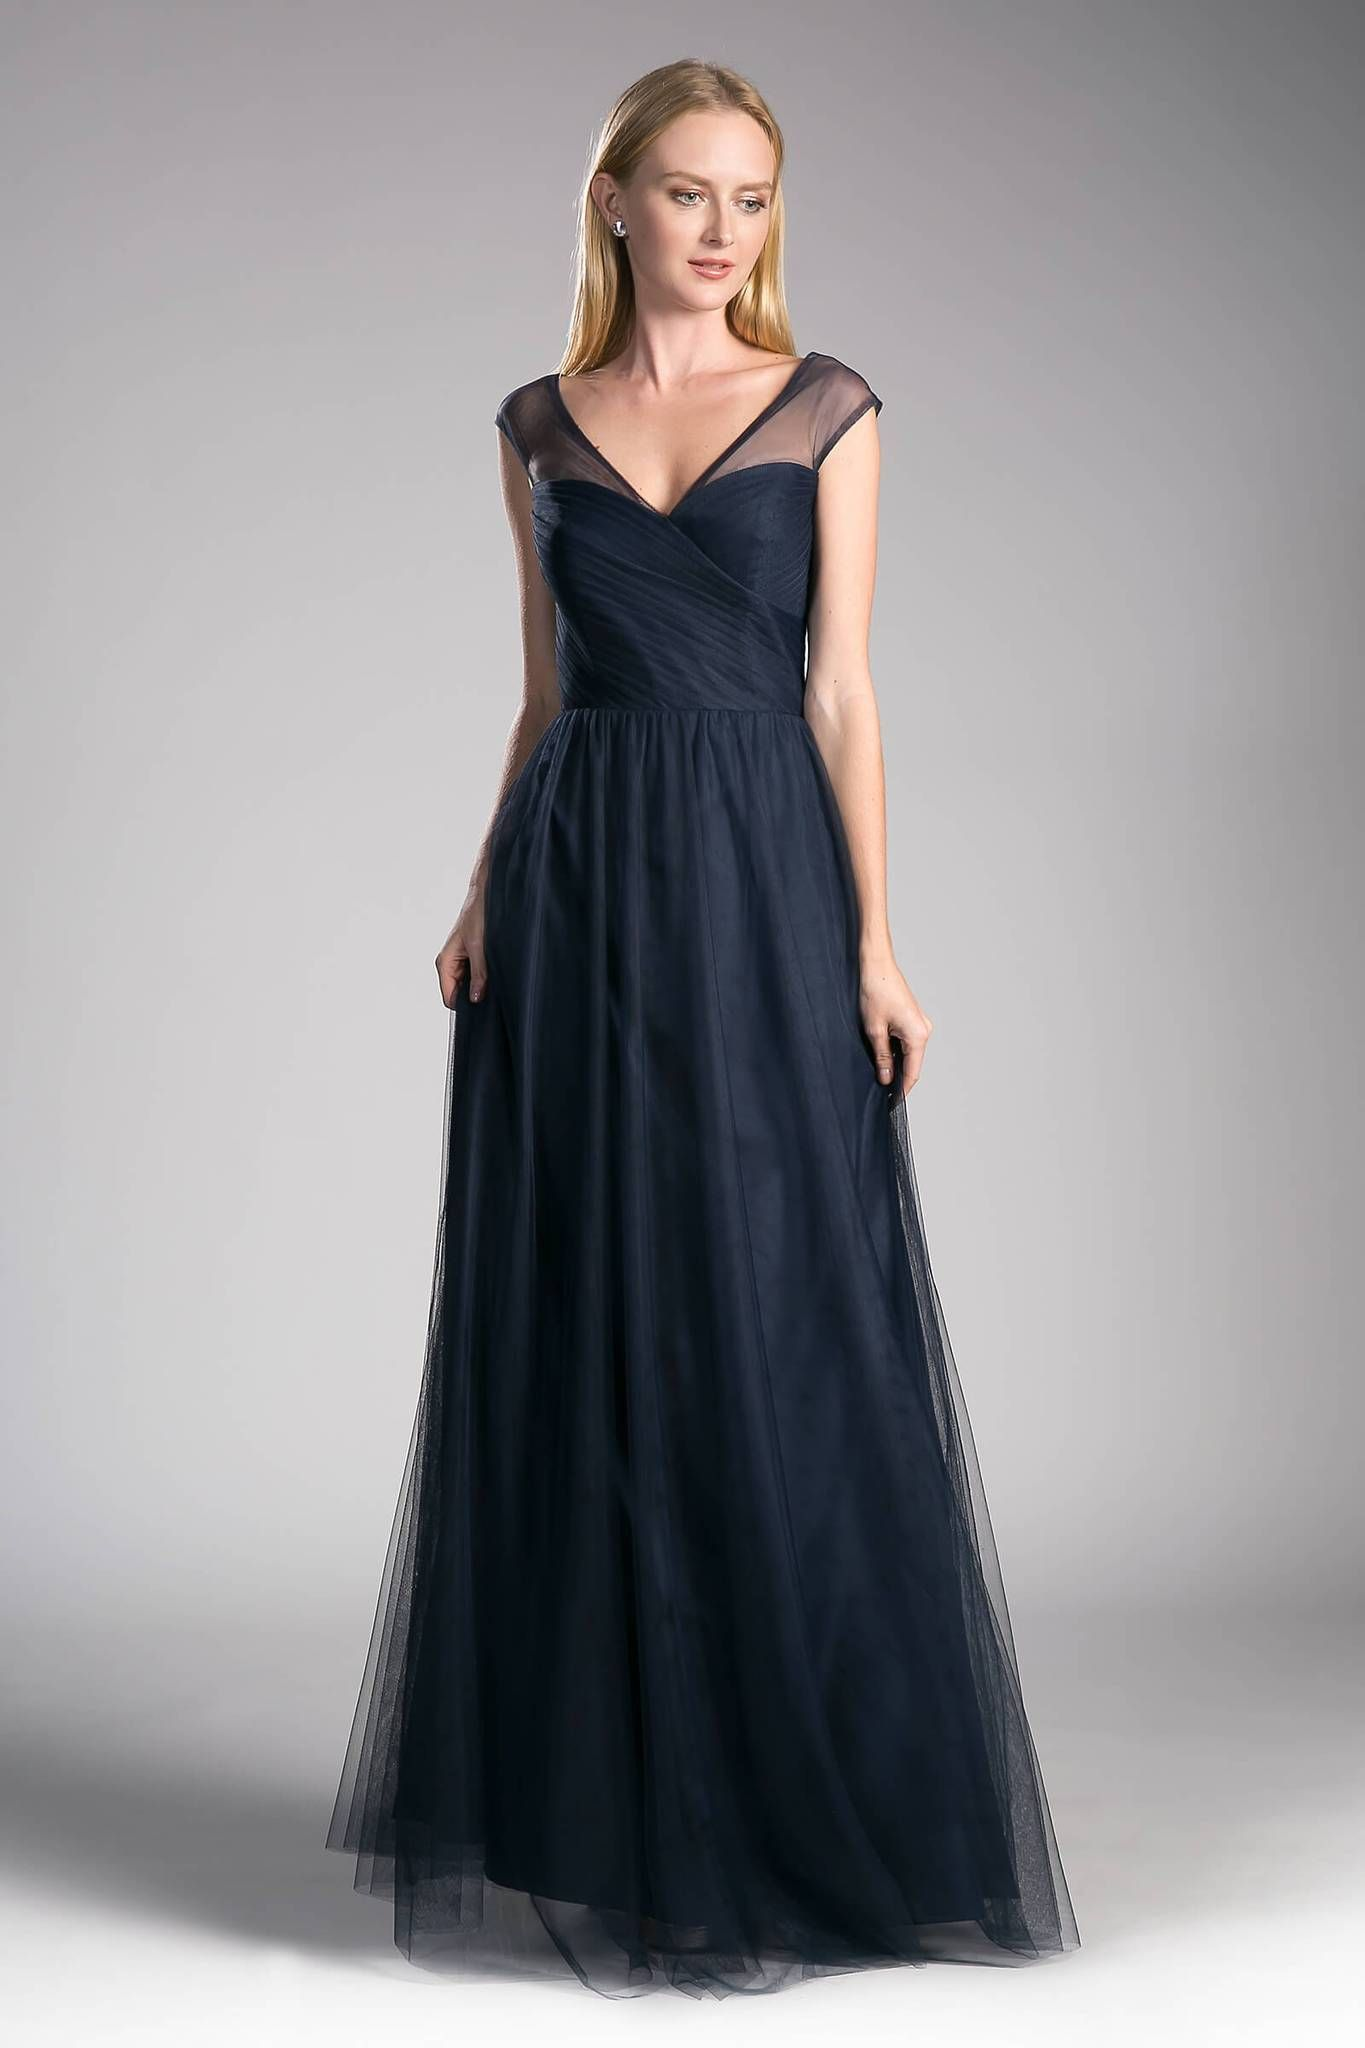 a03918f3710 Long Plus Size Formal Dress Bridesmaid Gown in 2019